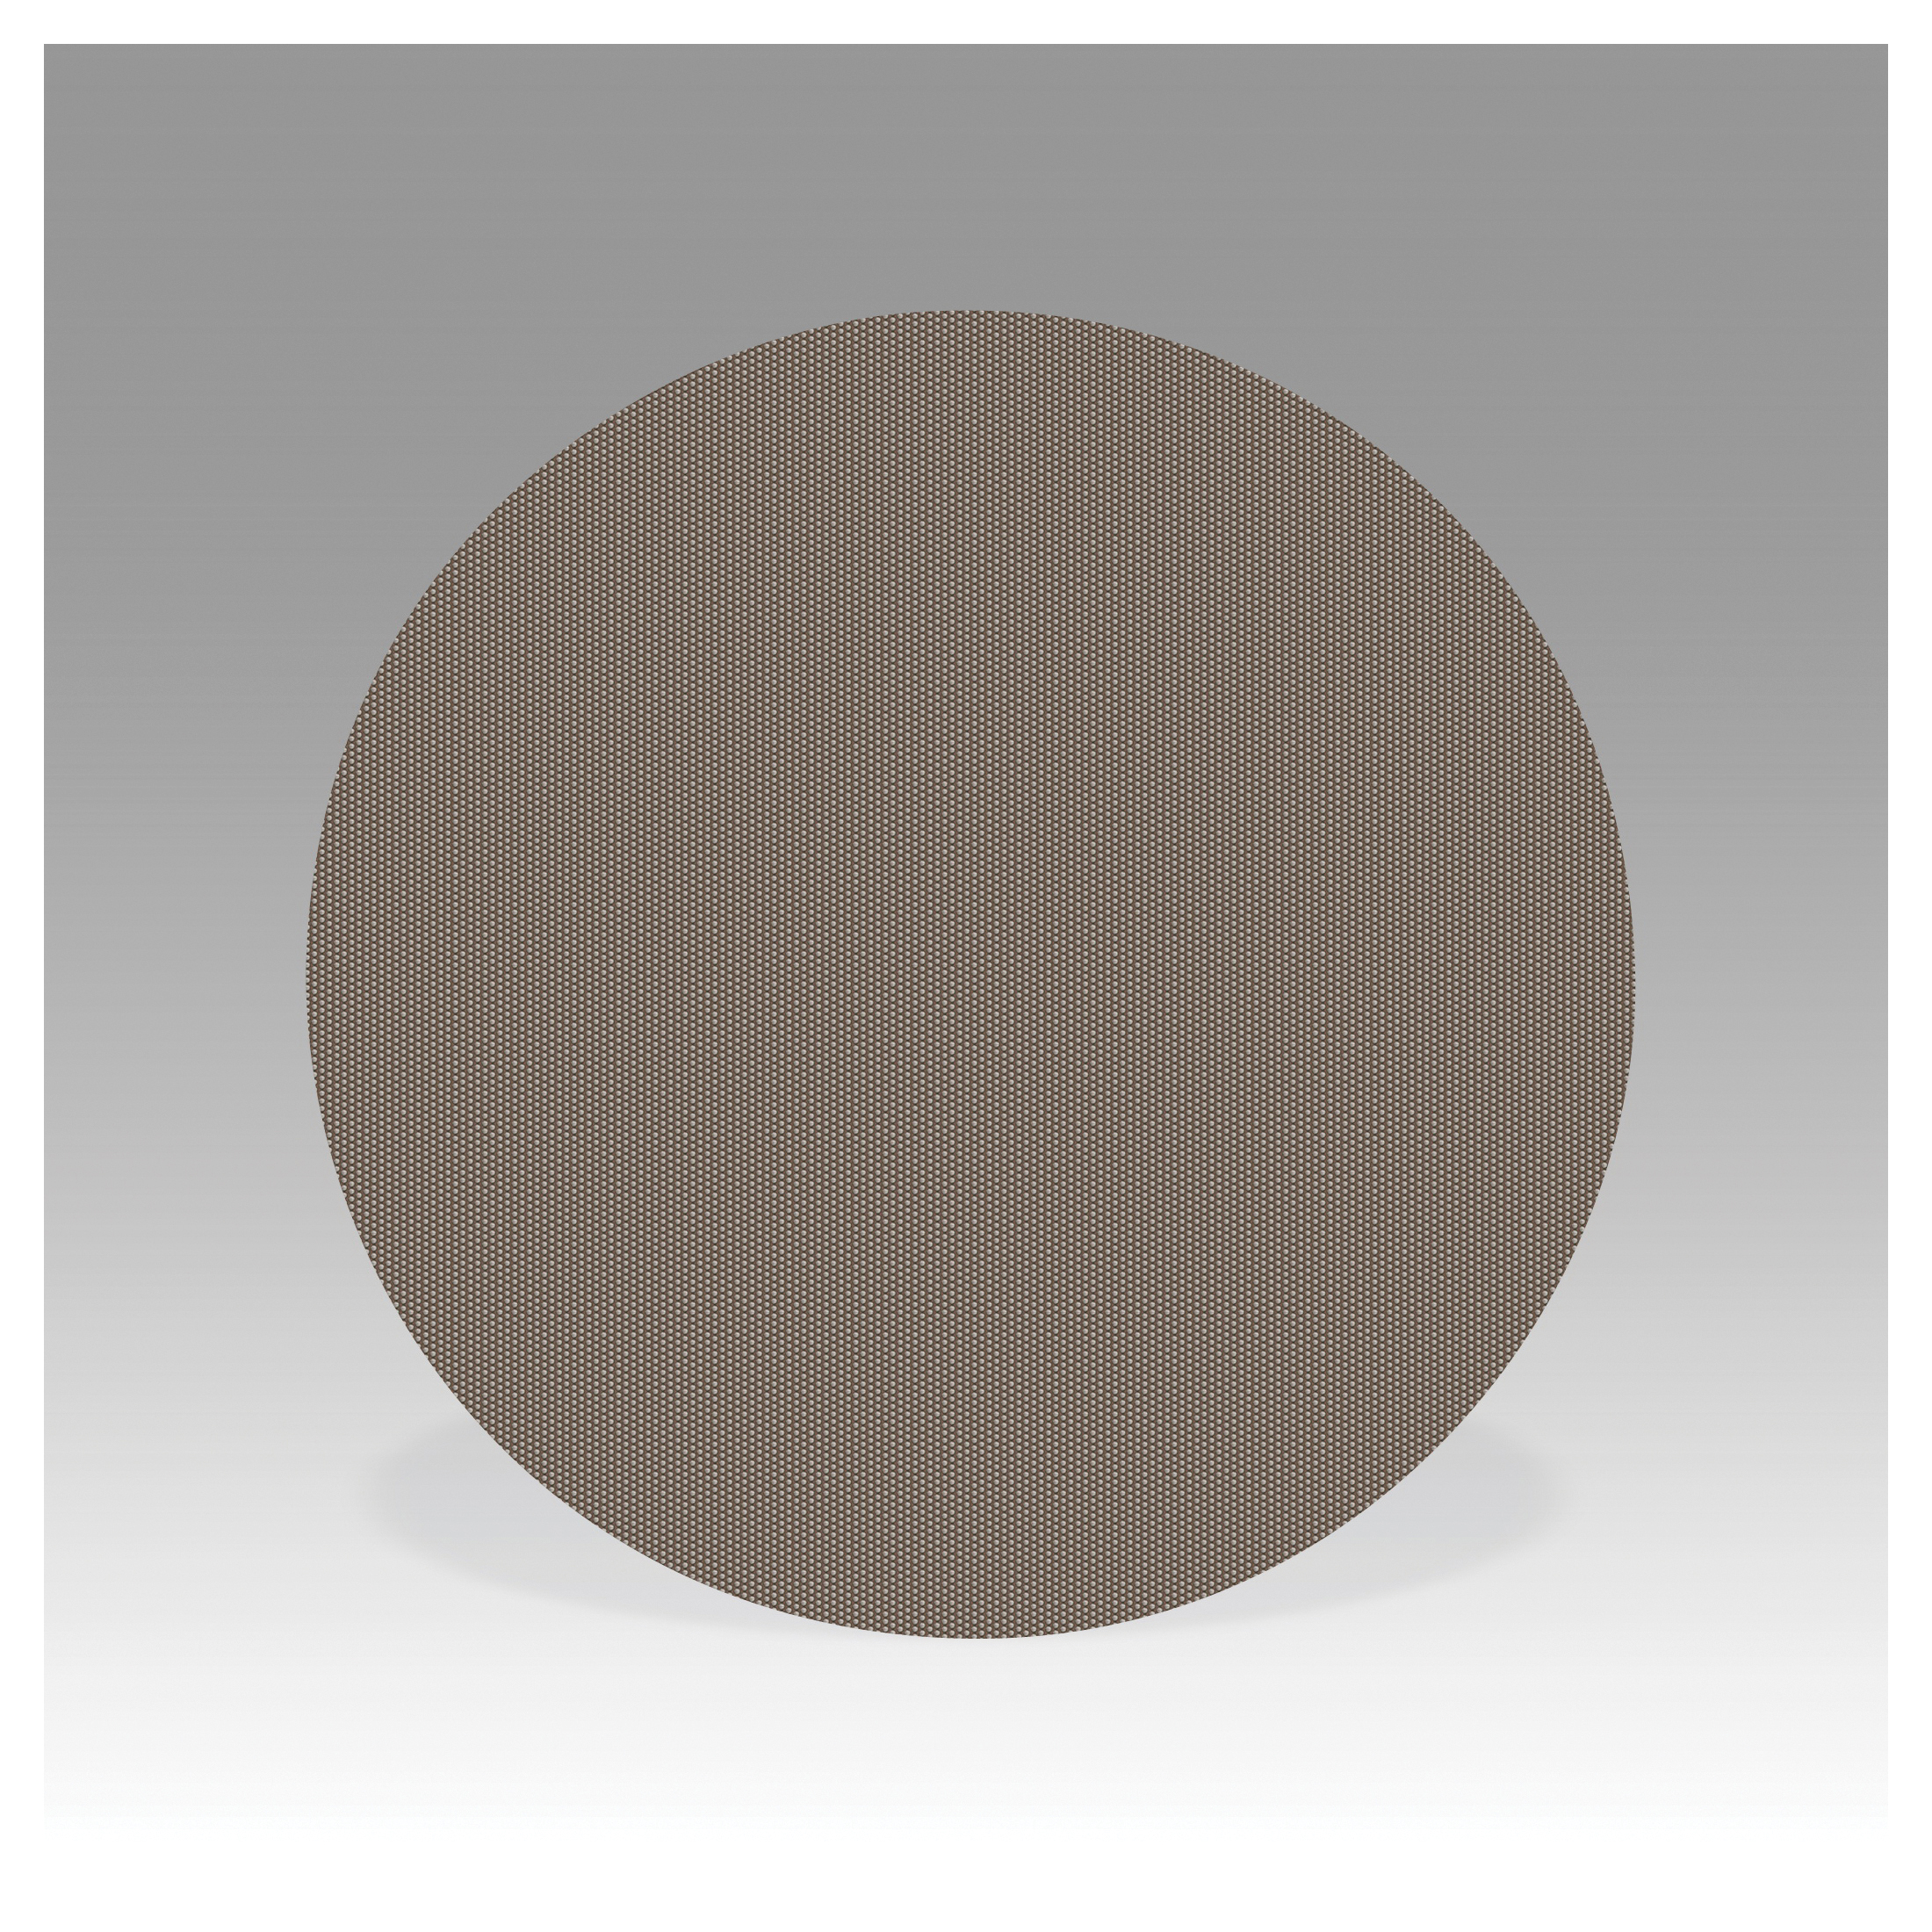 3M™ 051144-81303 6008J Flexible Coated Abrasive Disc, 8 in Dia, No Hole, M40 Grit, Extra Fine Grade, Diamond Abrasive